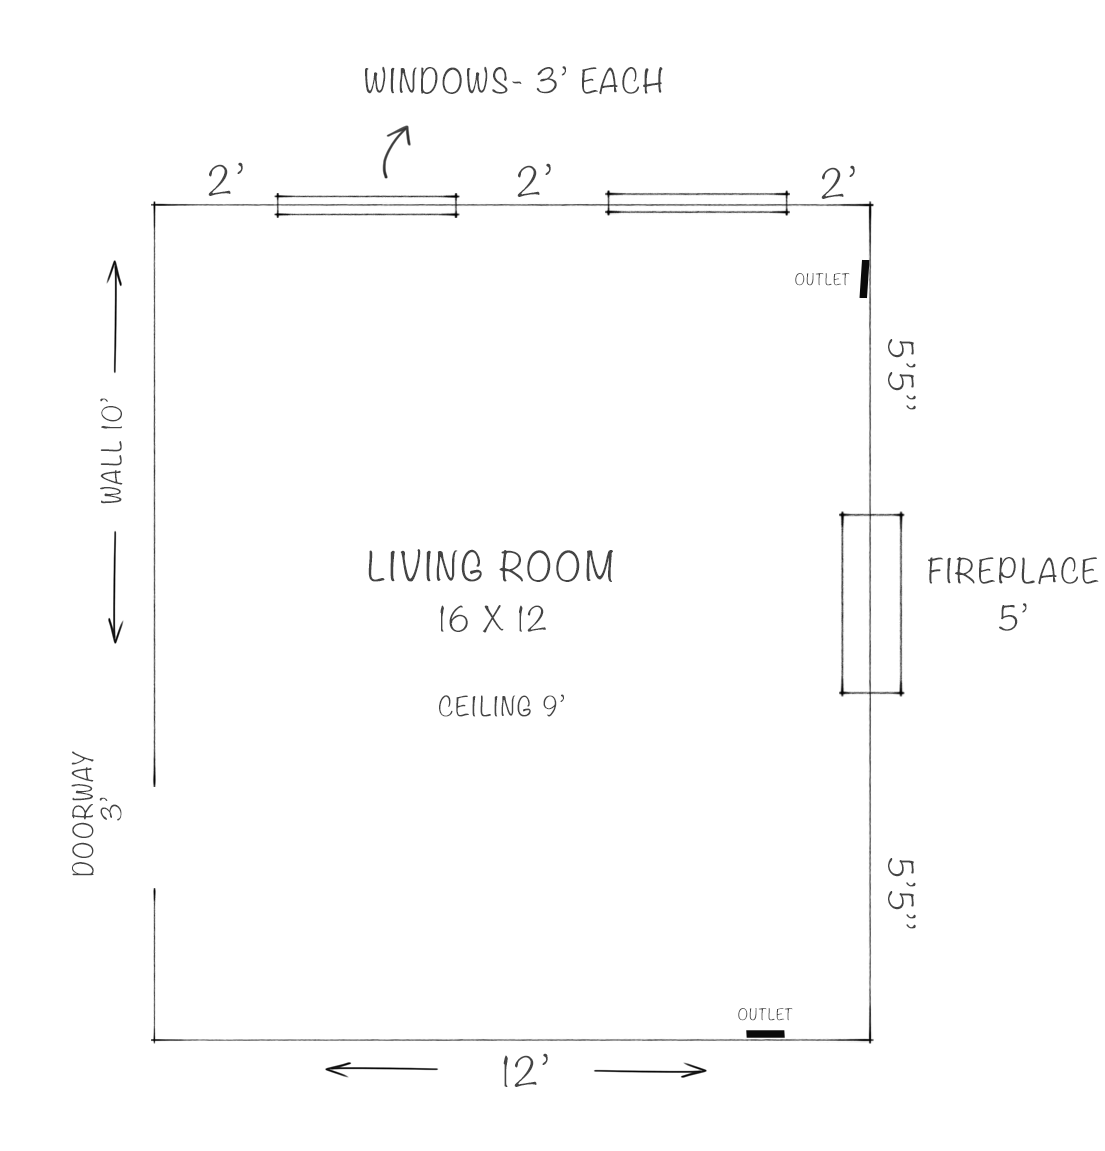 How To Photograph Amp Measure Room For E Design